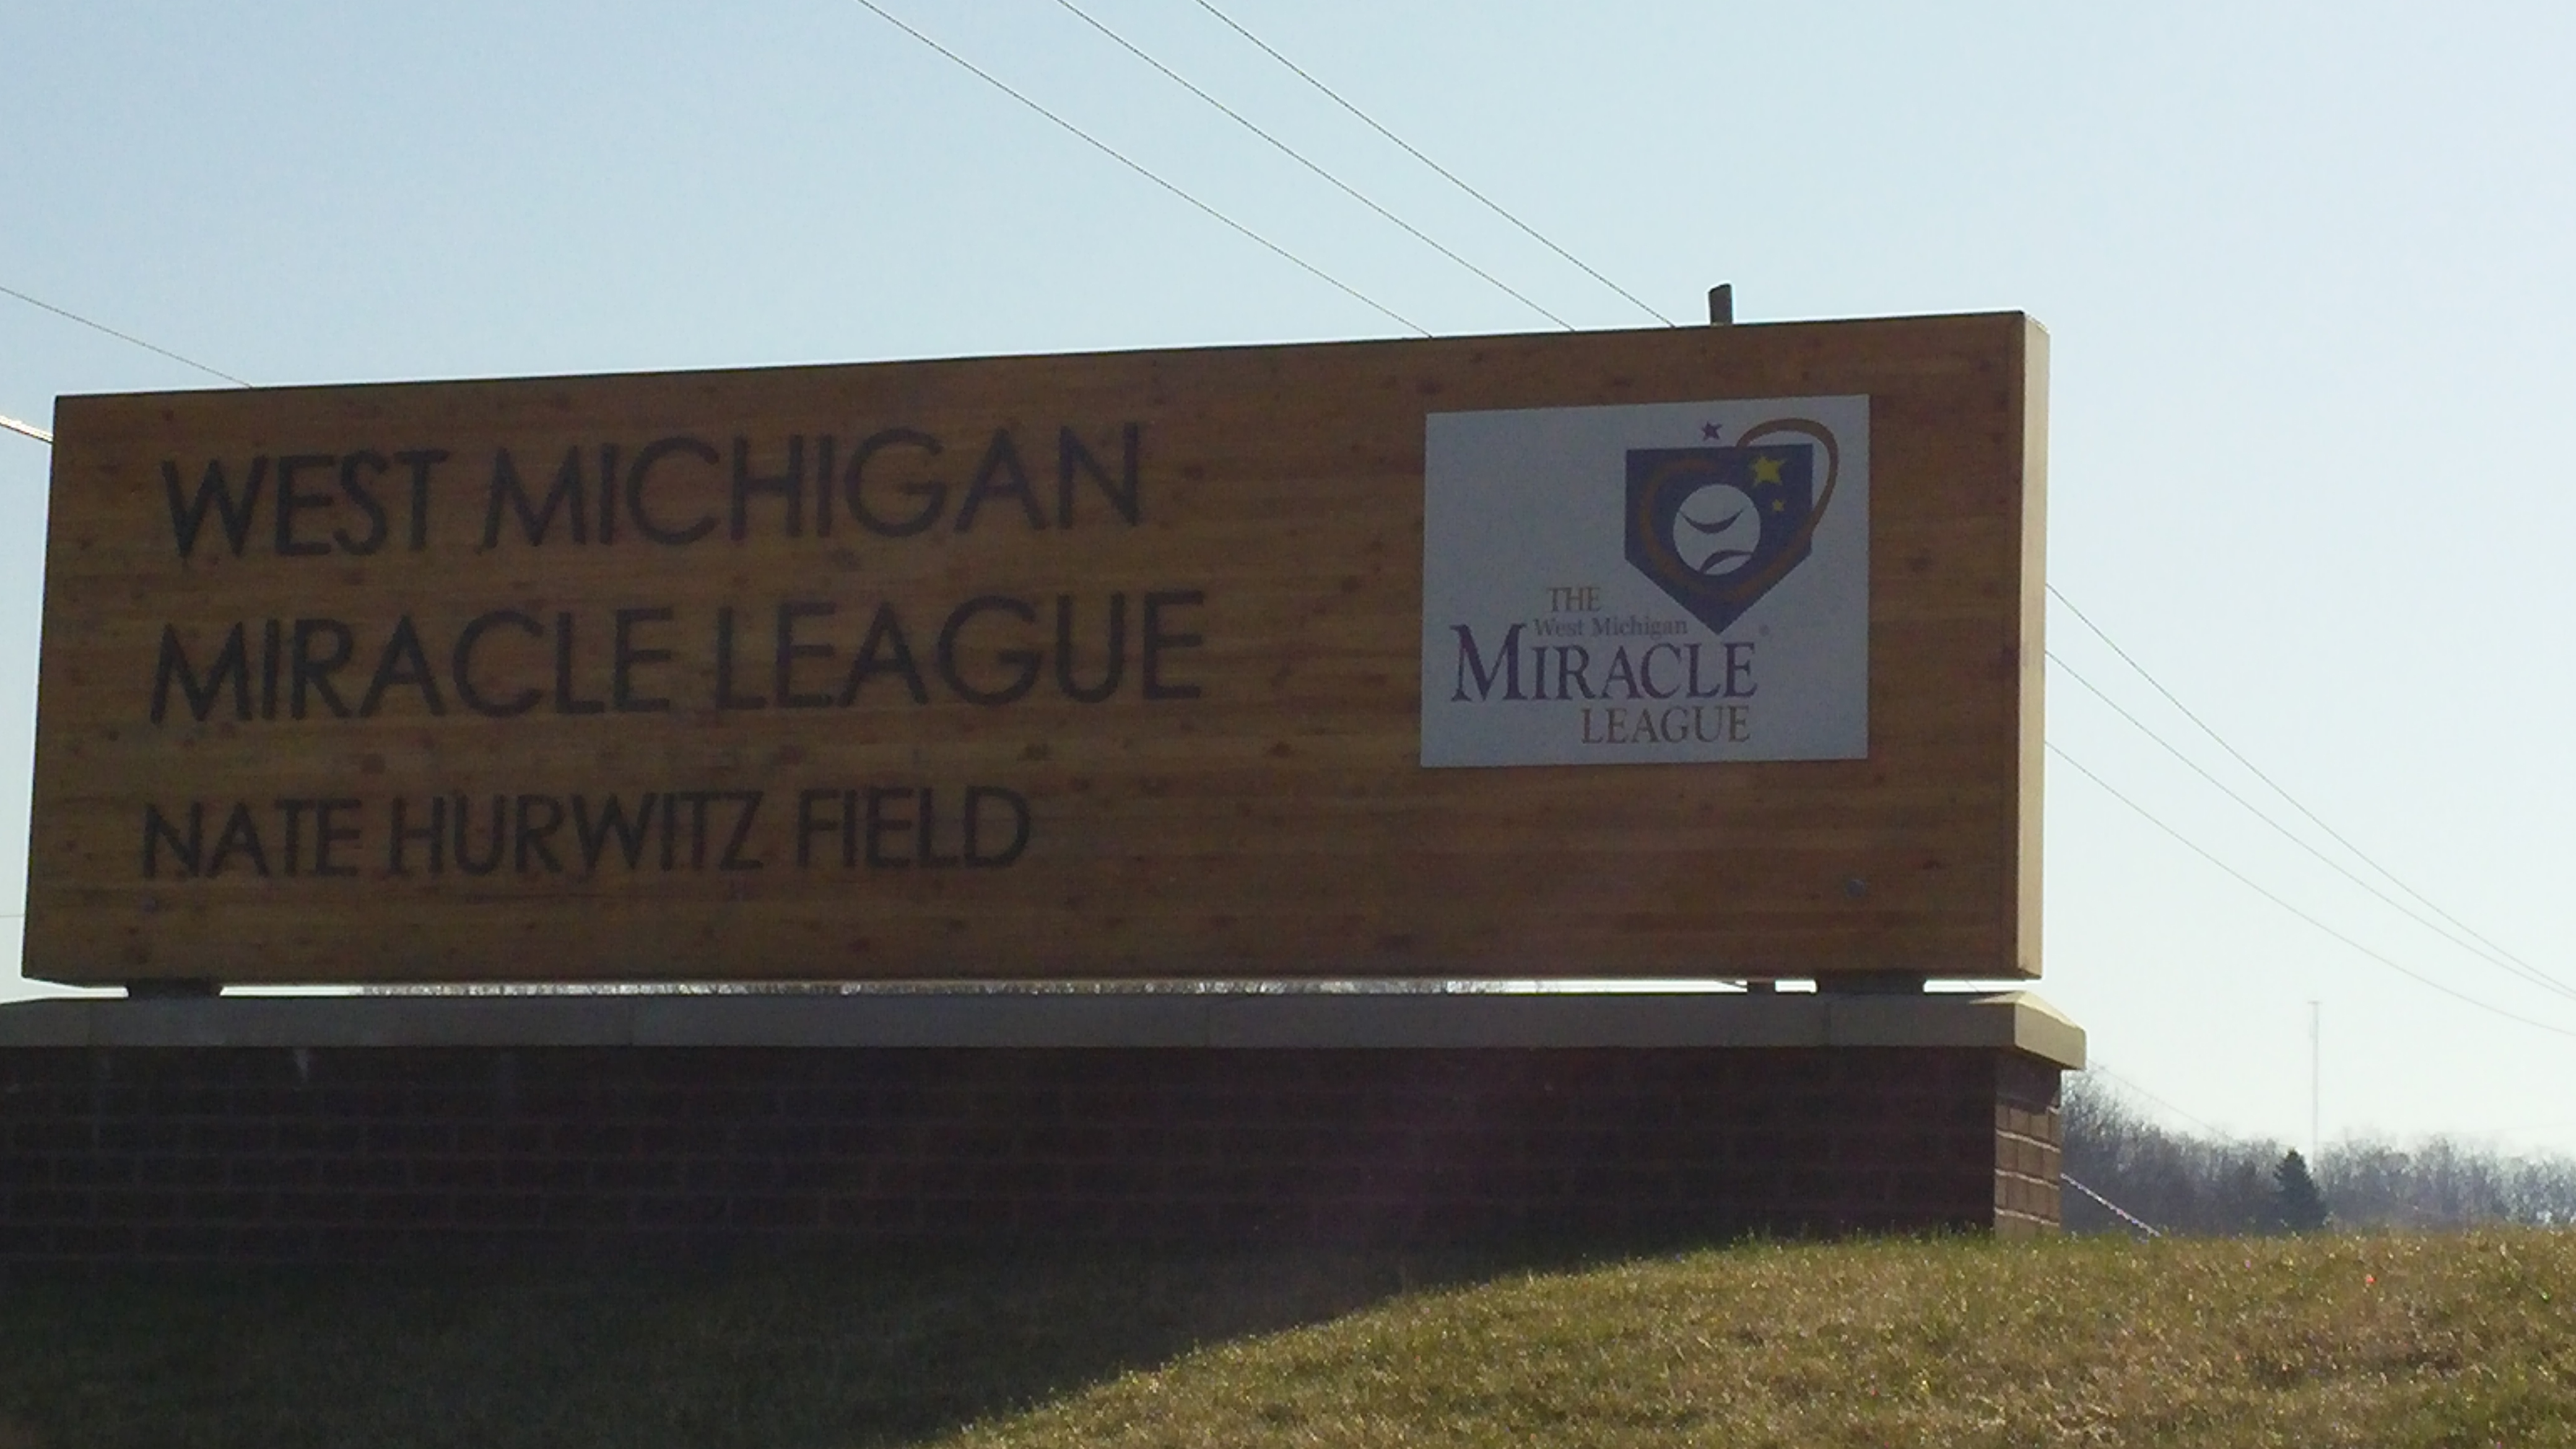 West-Michigan-Miracle-League